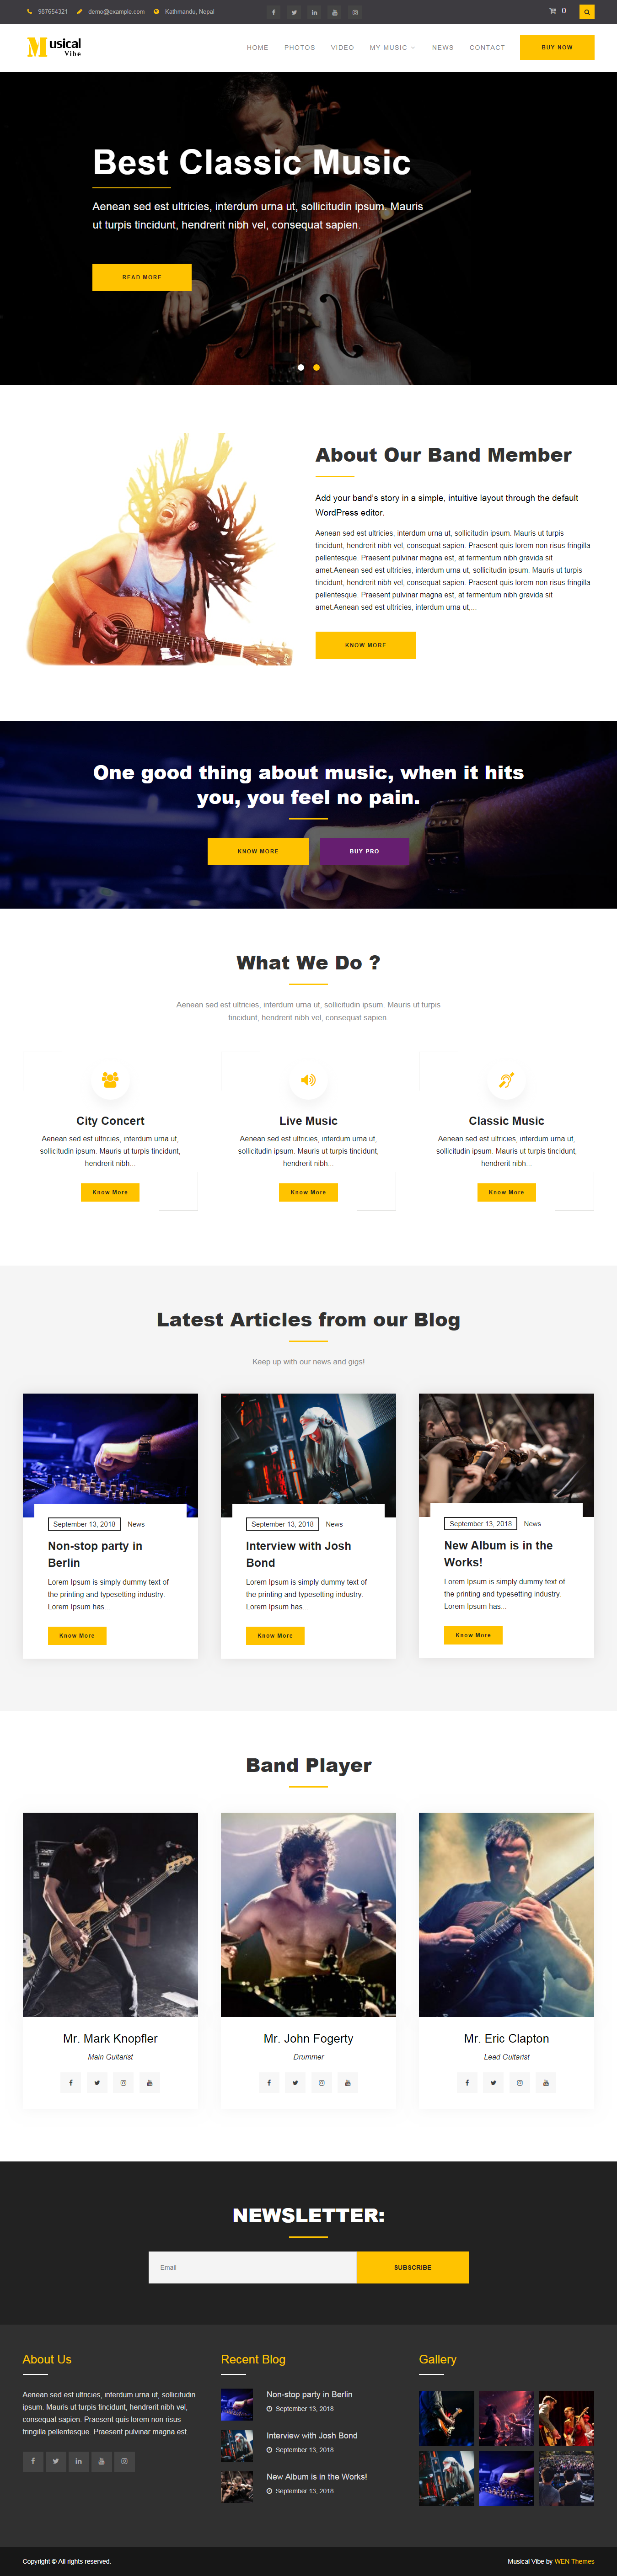 musical vibe best free video and music wordpress theme - 10+ Best Free Video and Music WordPress Themes